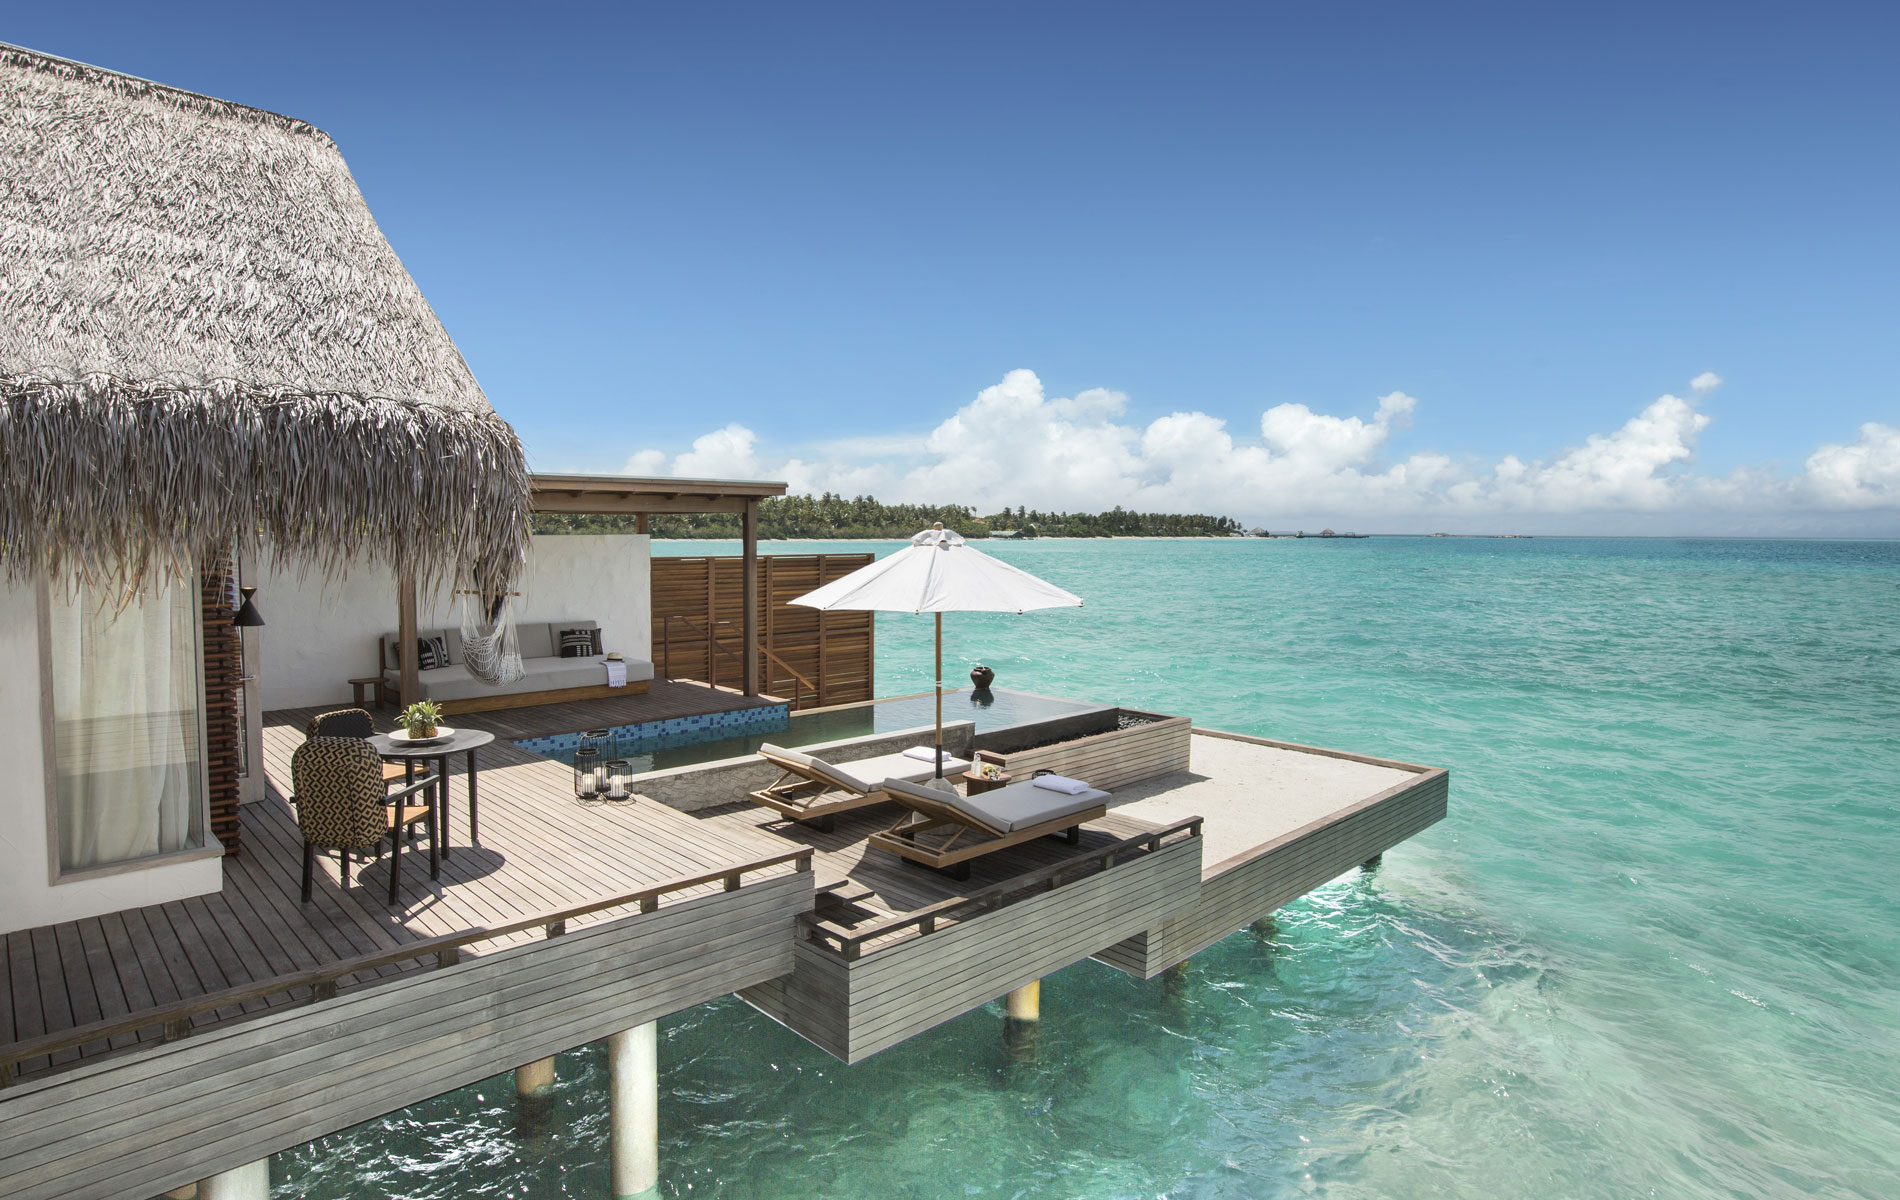 Fairmont has opened its first property in Maldives and it is simply stunning -